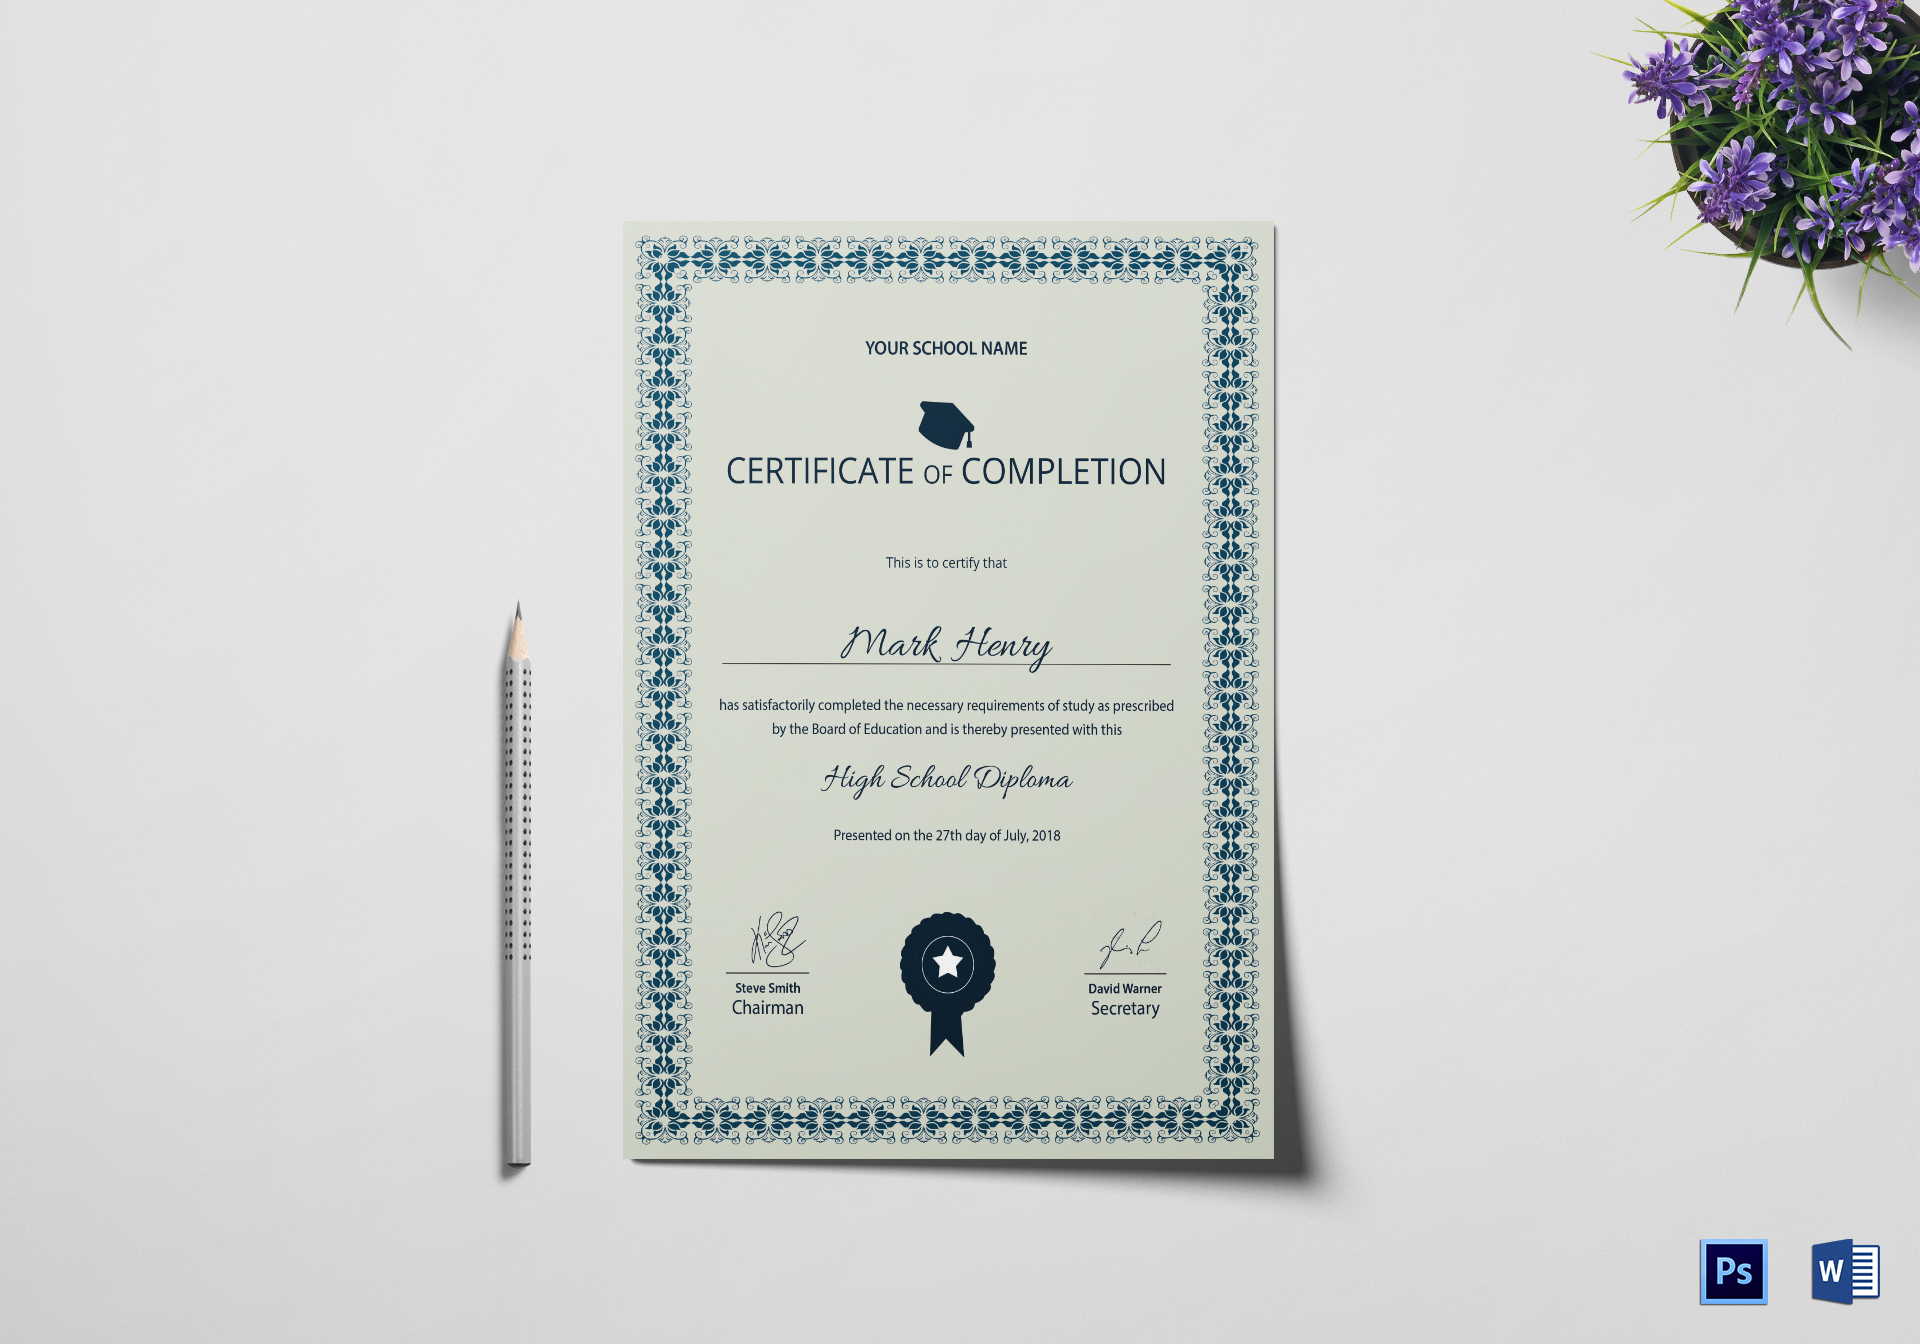 High School Diploma Completion Certificate Template